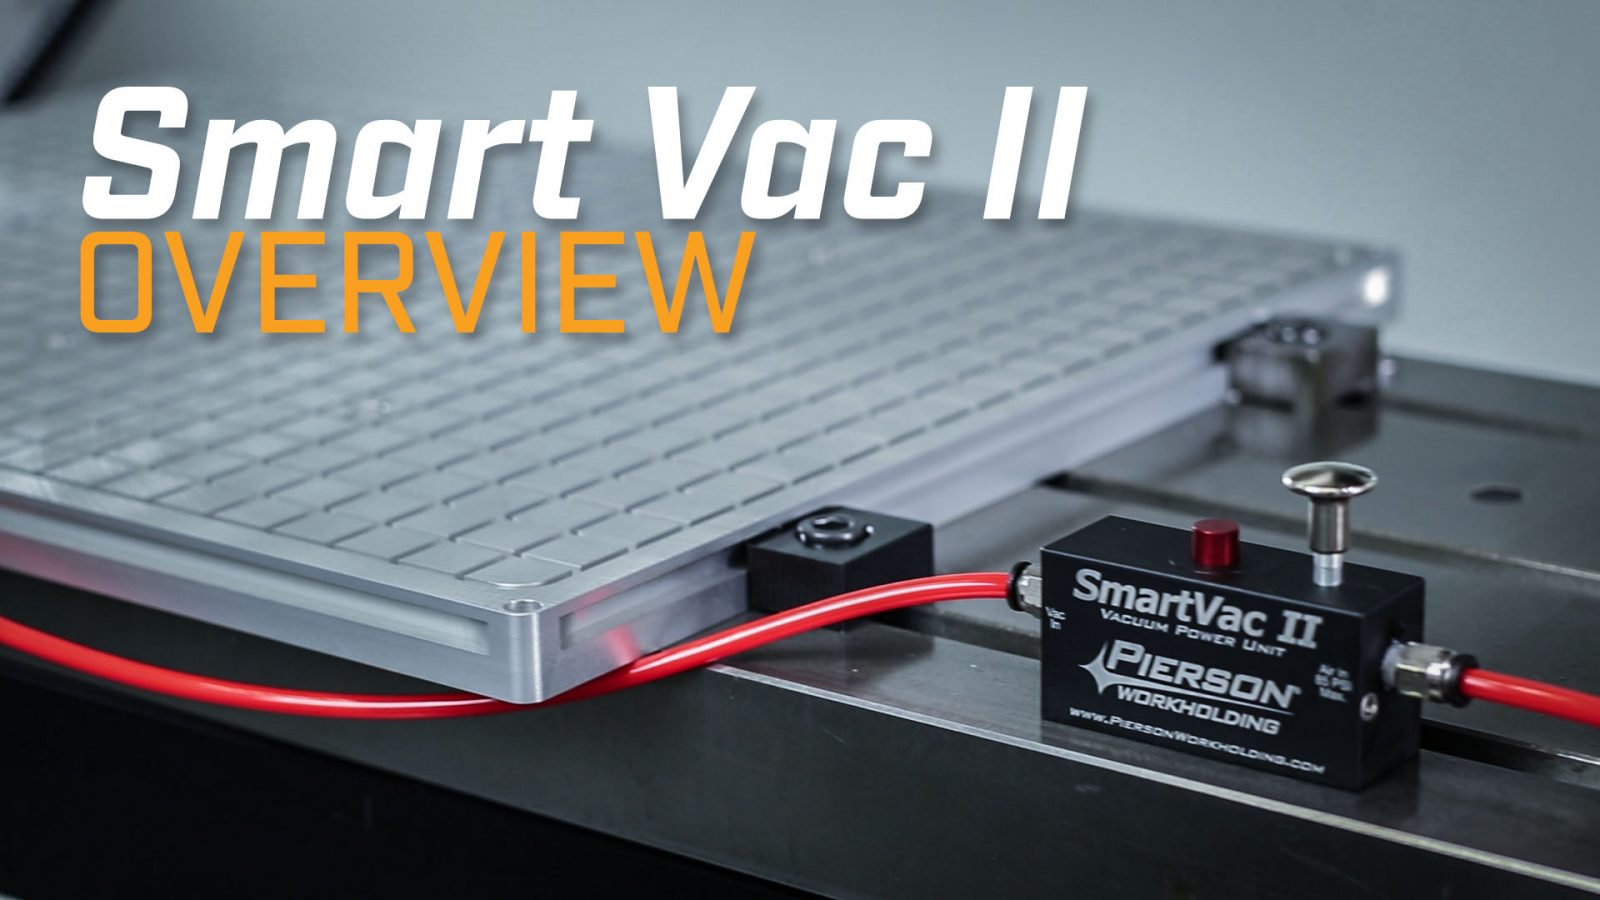 Smart Vac II Overview